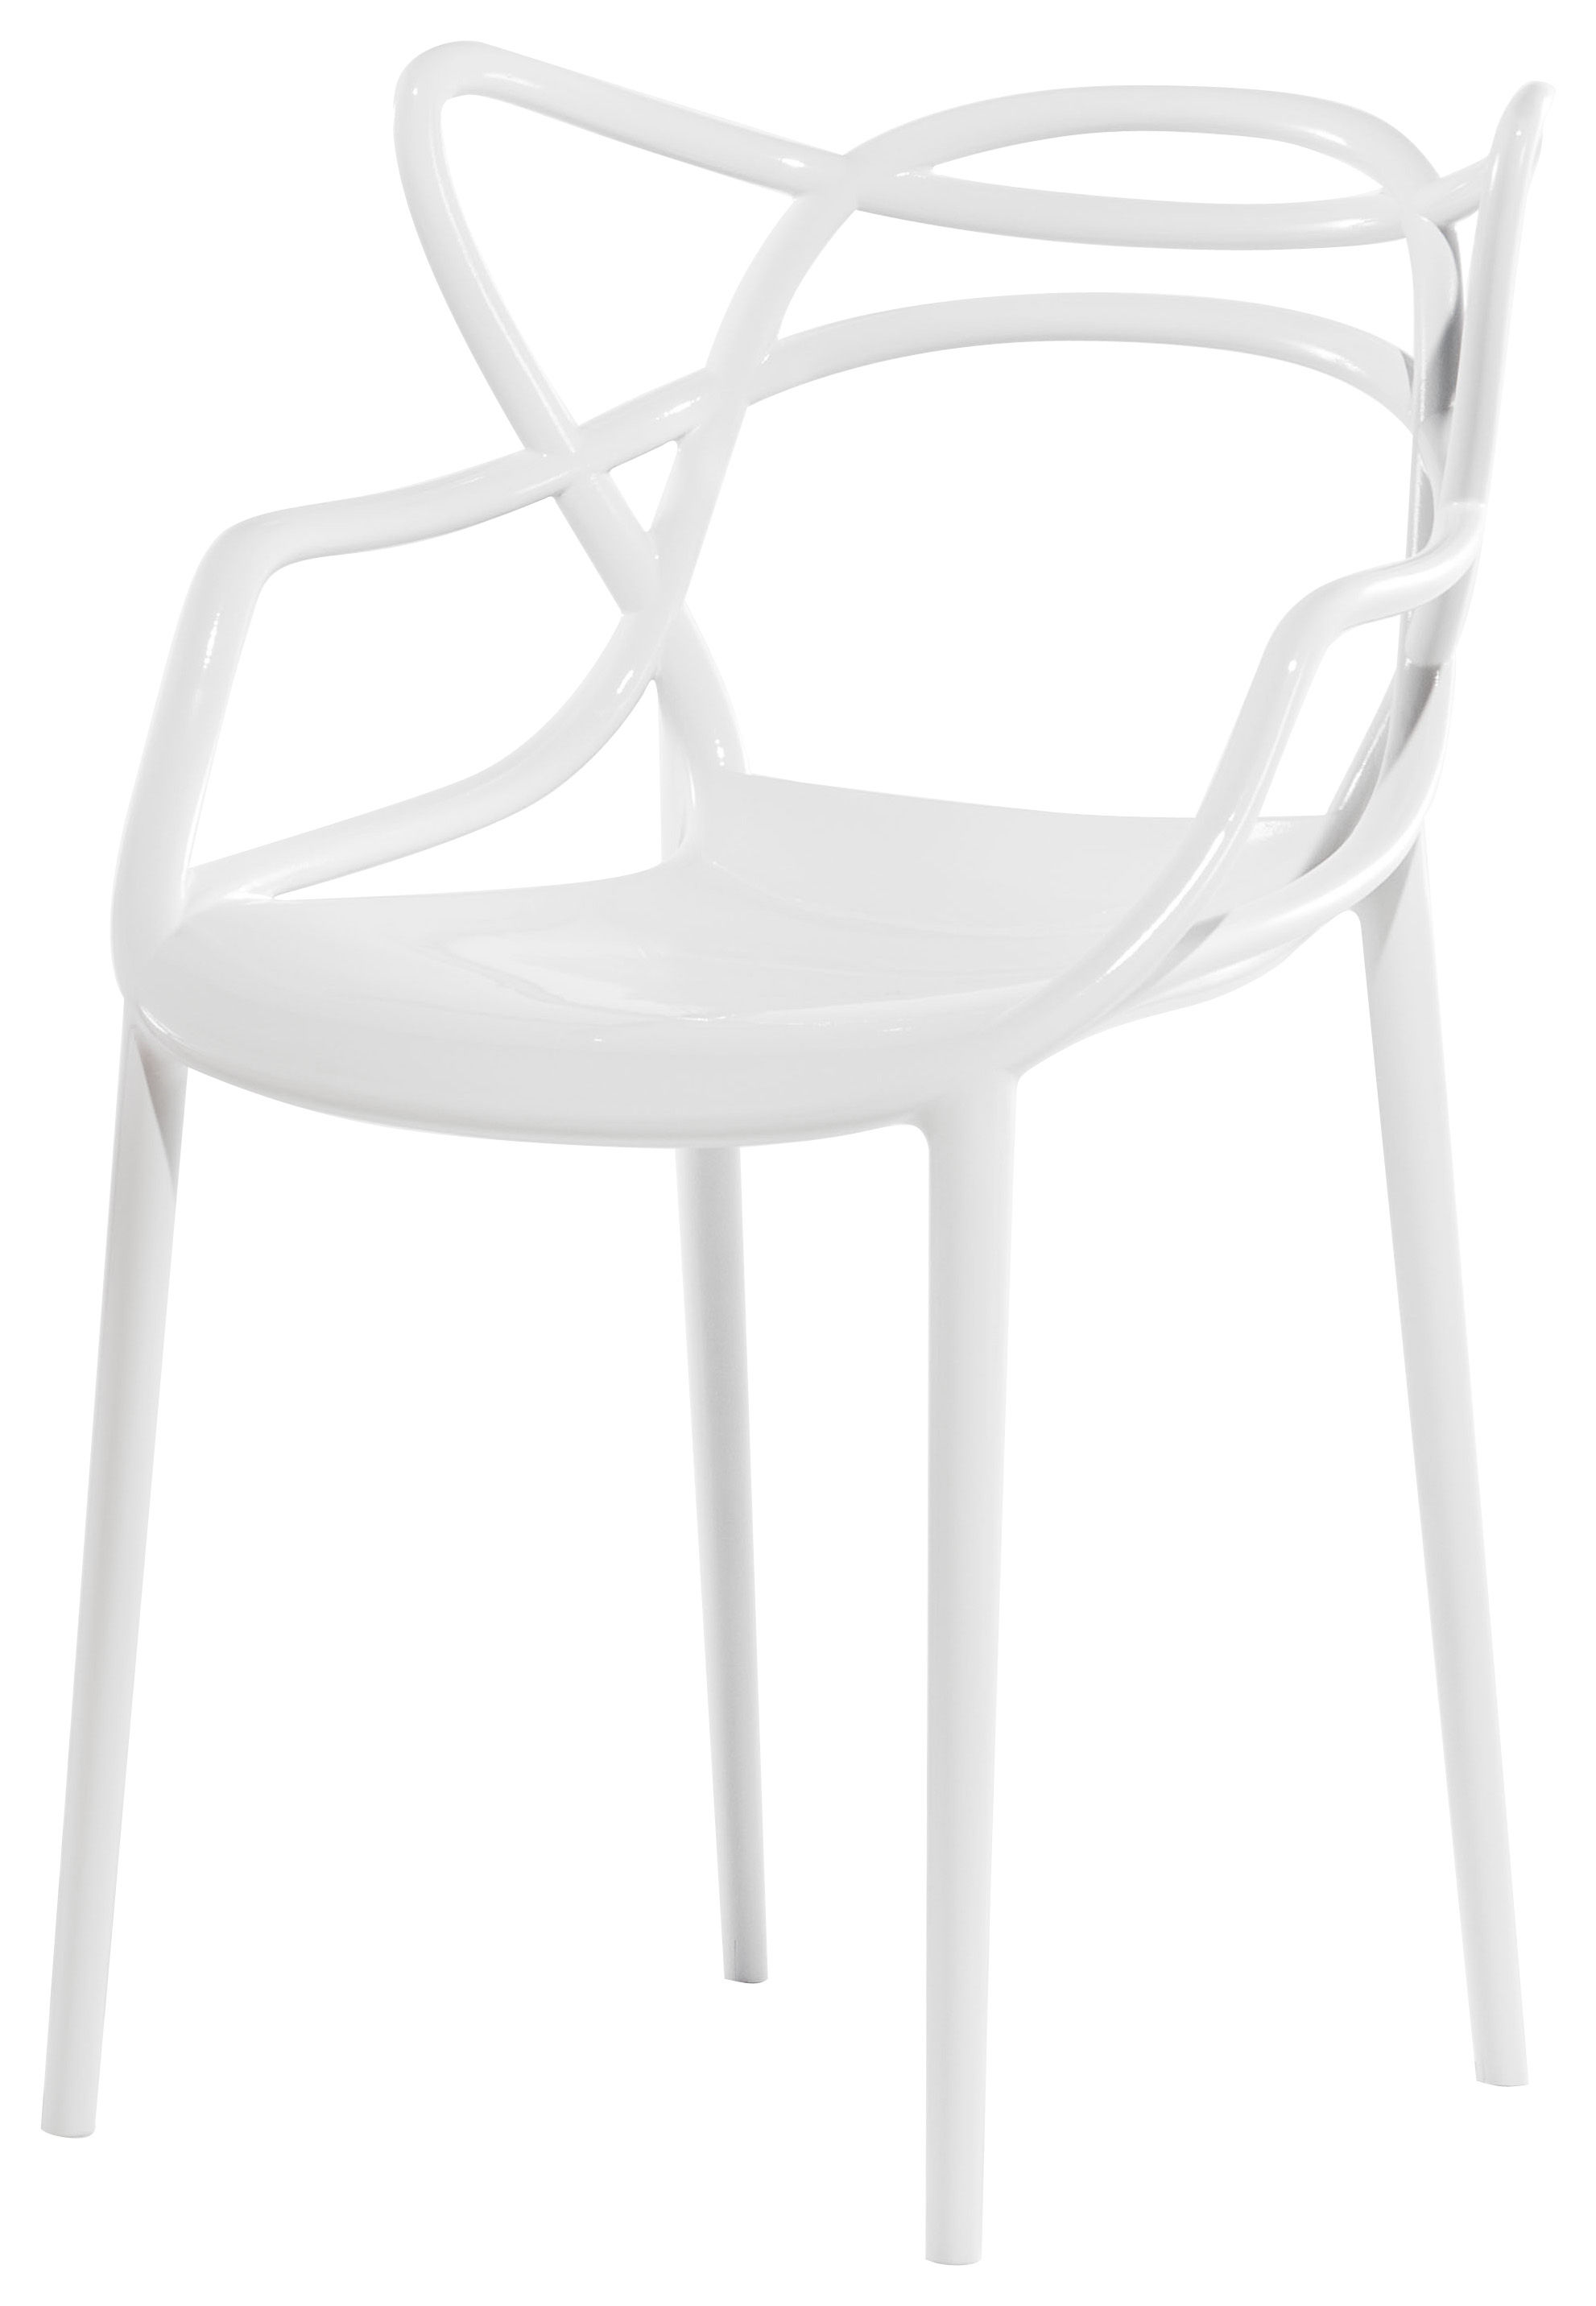 fauteuil empilable masters plastique blanc kartell. Black Bedroom Furniture Sets. Home Design Ideas